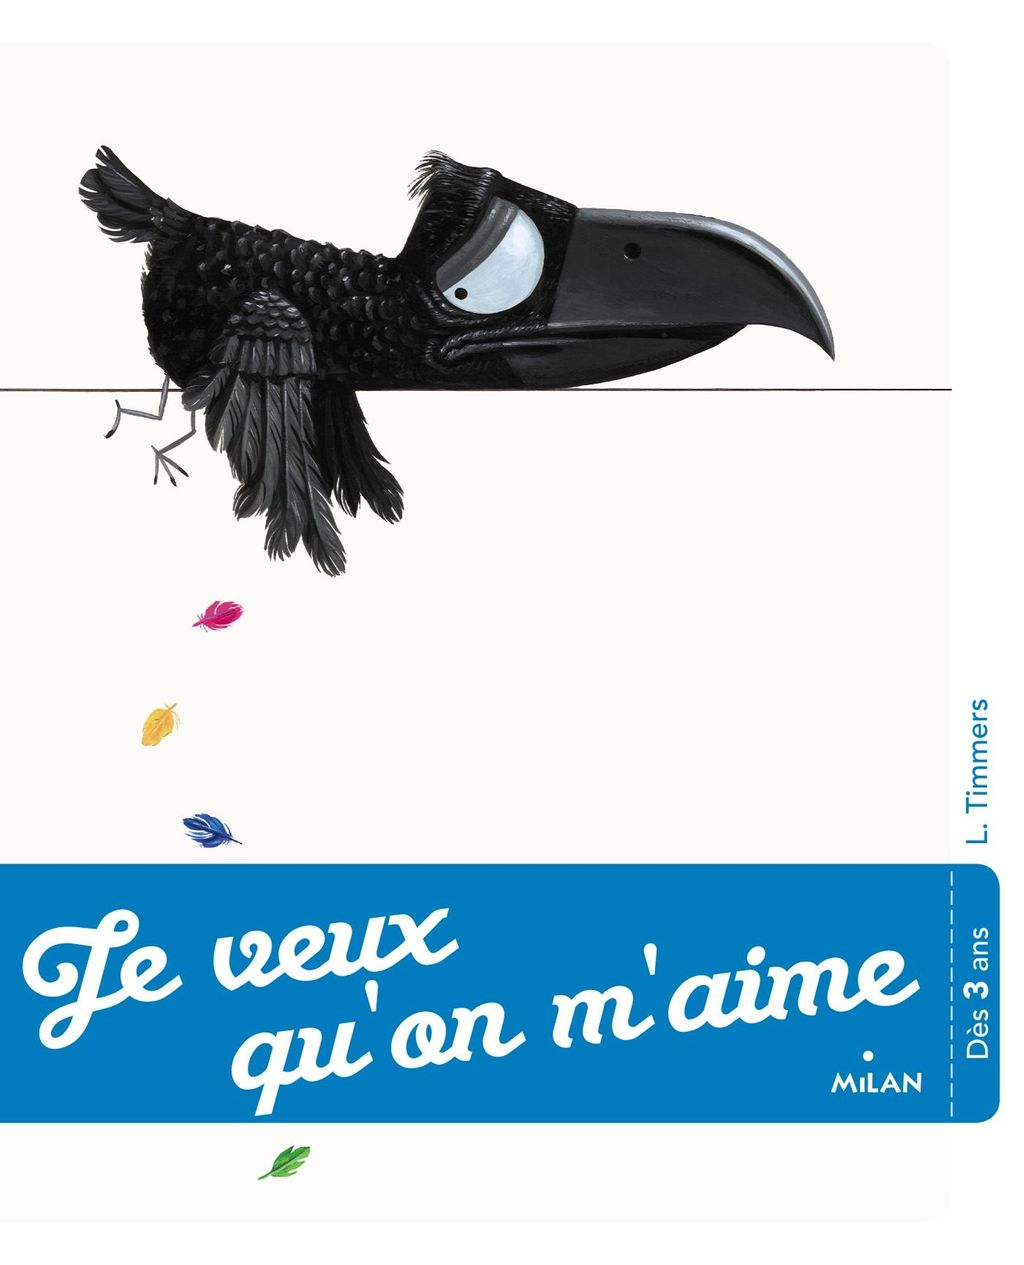 Je veux qu'on m'aime - Editions Milan